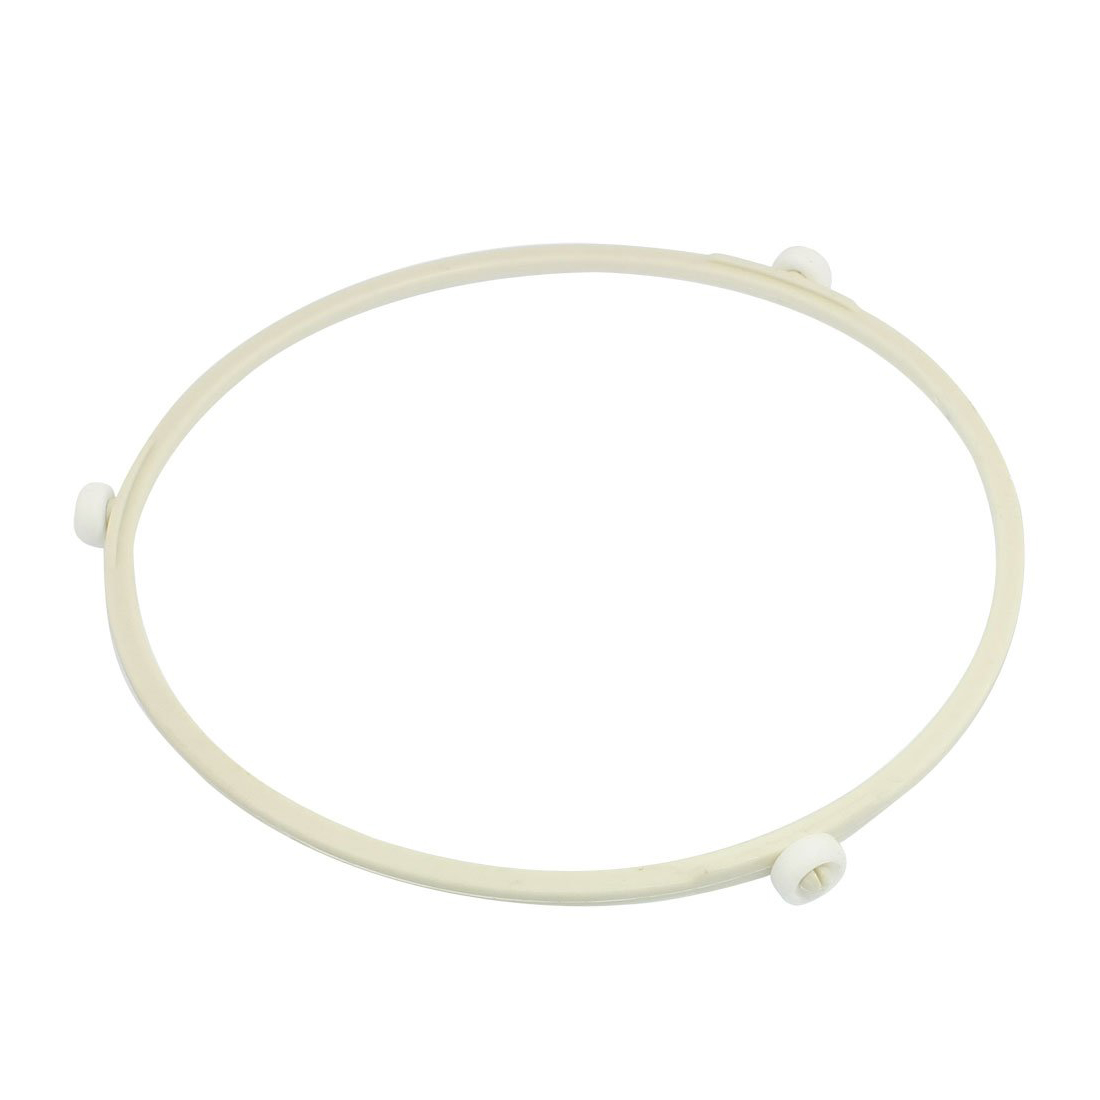 High Quality 6.9 Inches Microwave Oven Roller Guide Ring Turntable Support Plate Rotating Ring Support Kitchen Applicant Part